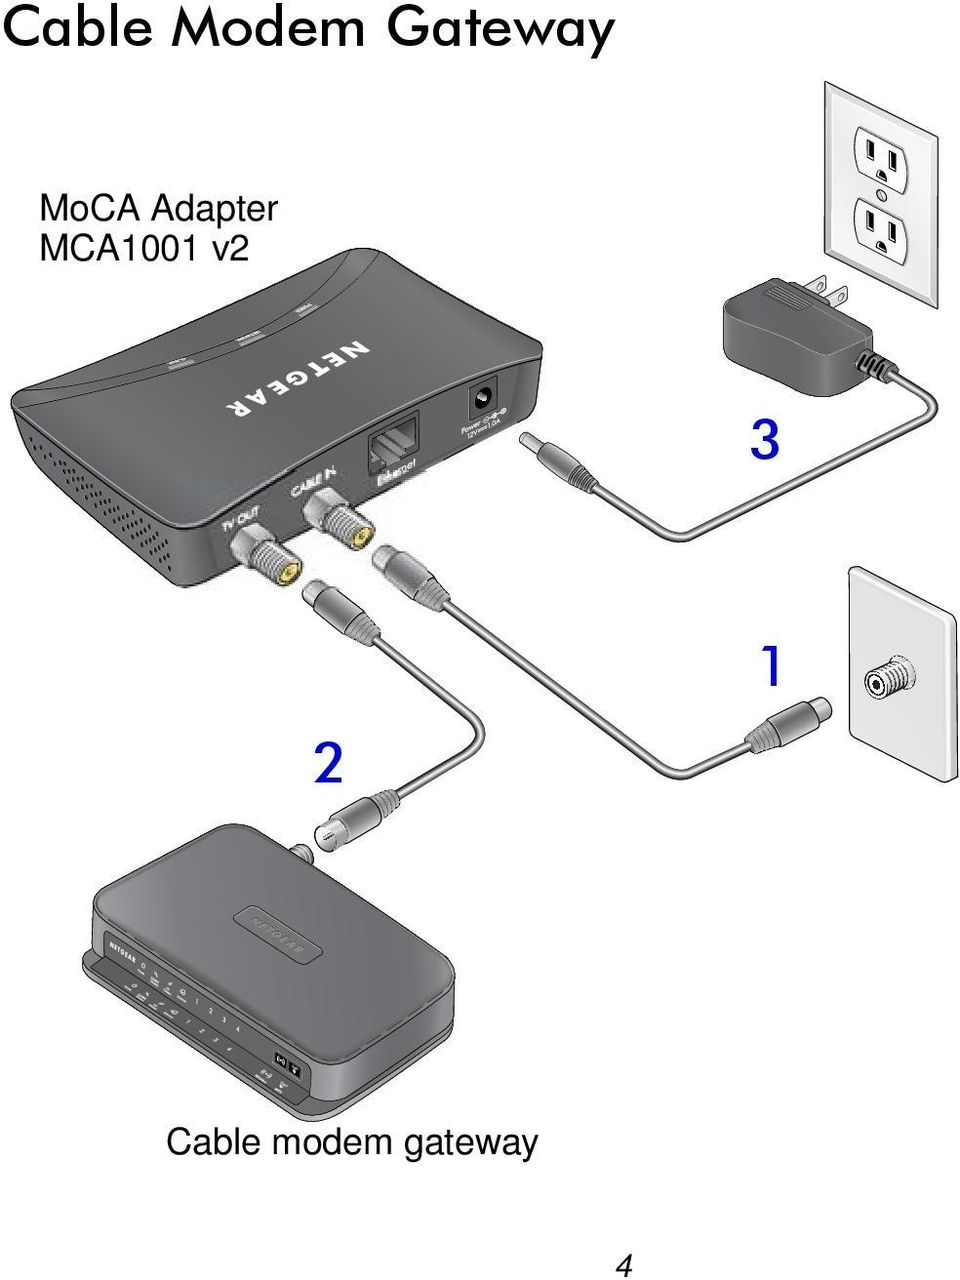 Adapter MCA1001